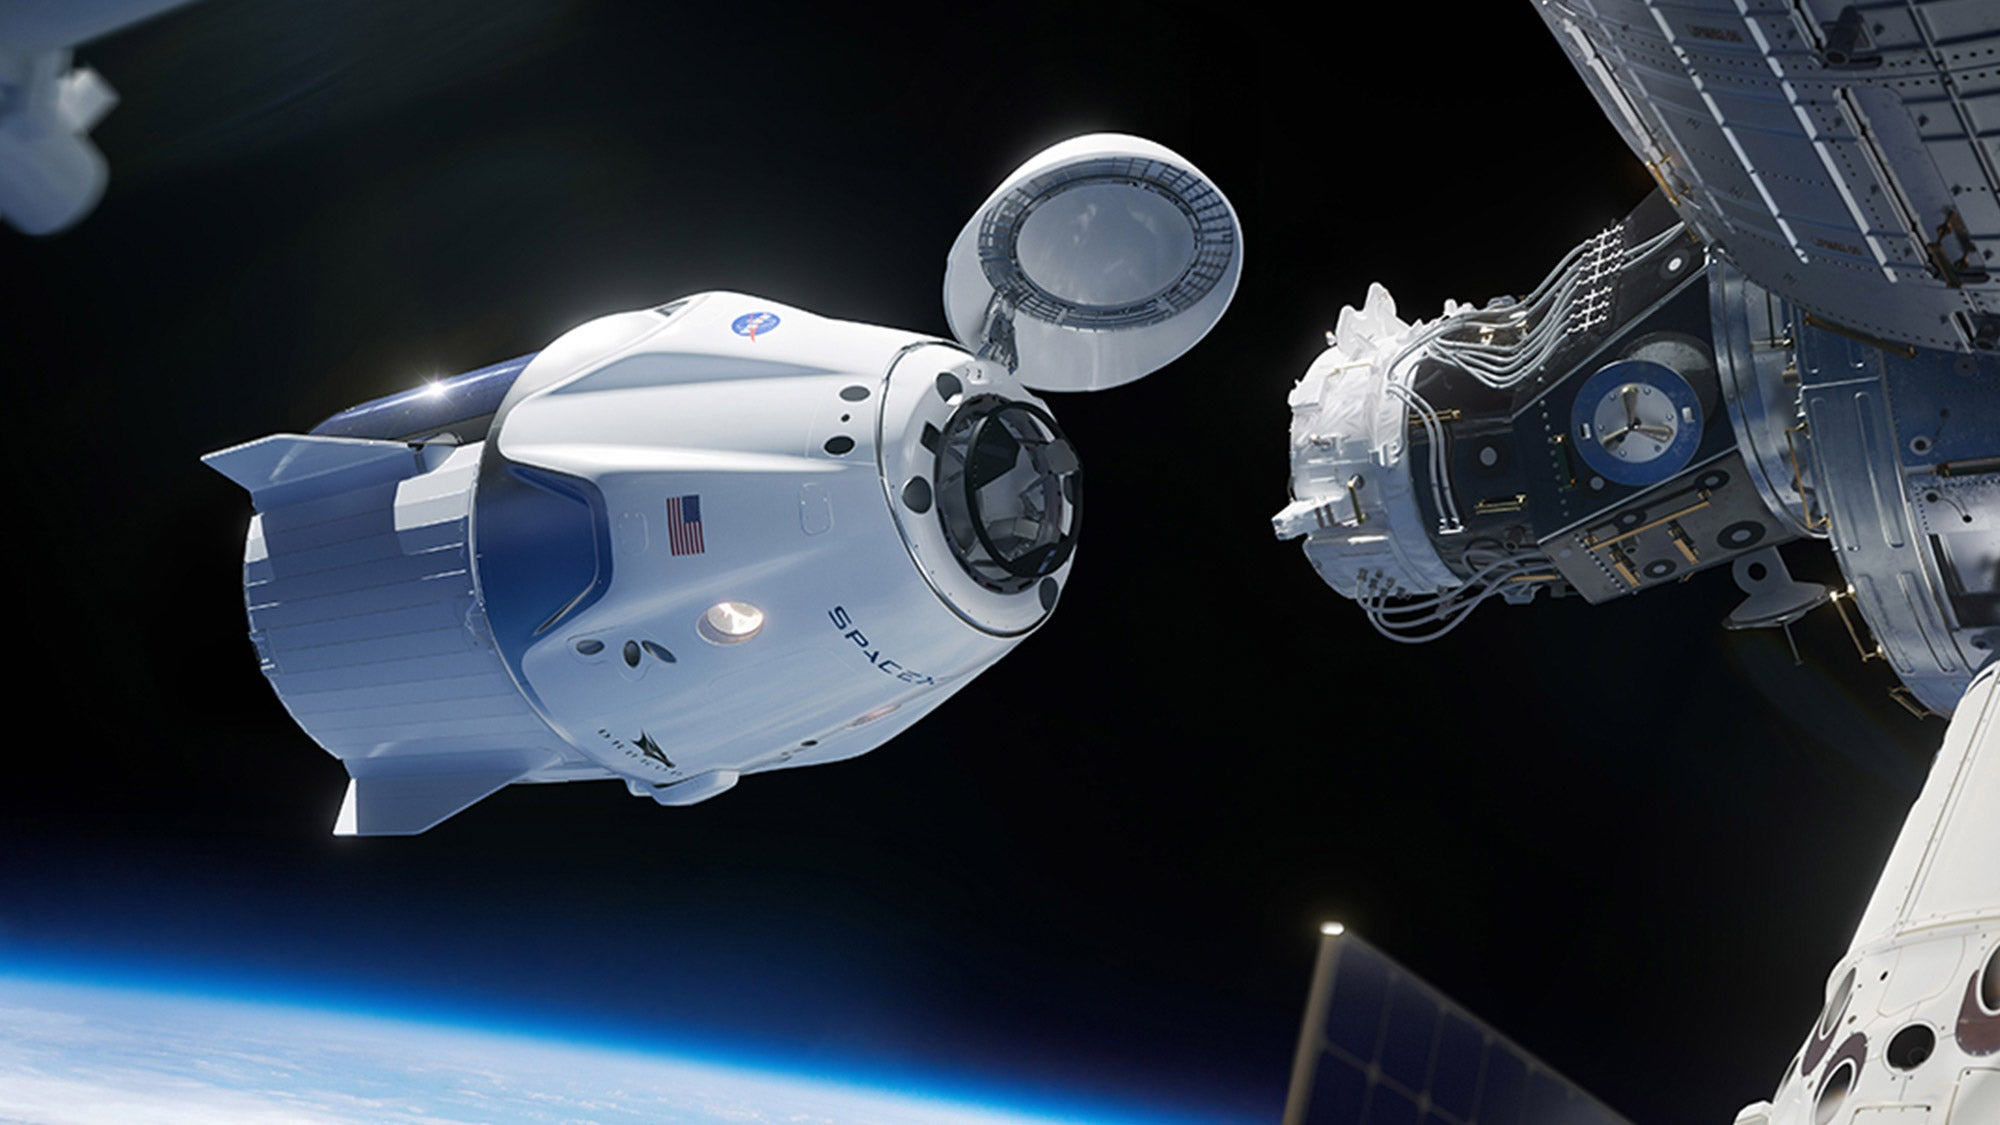 SpaceX Successful Abort Test Widens Lead Over Boeing | The Motley Fool